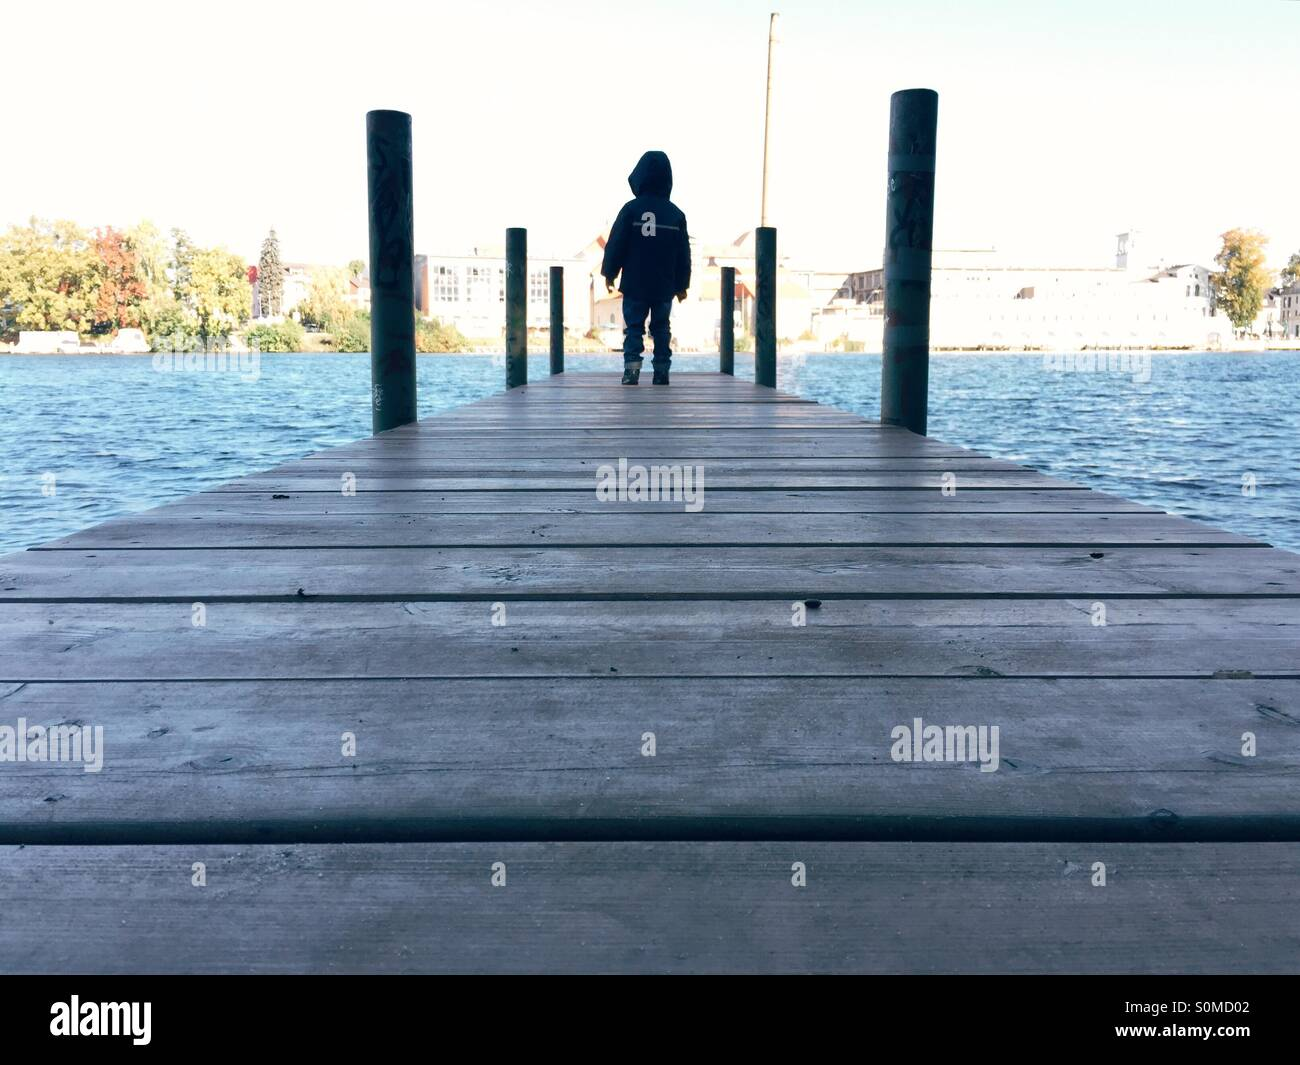 Young boy standing on a jetty - Stock Image